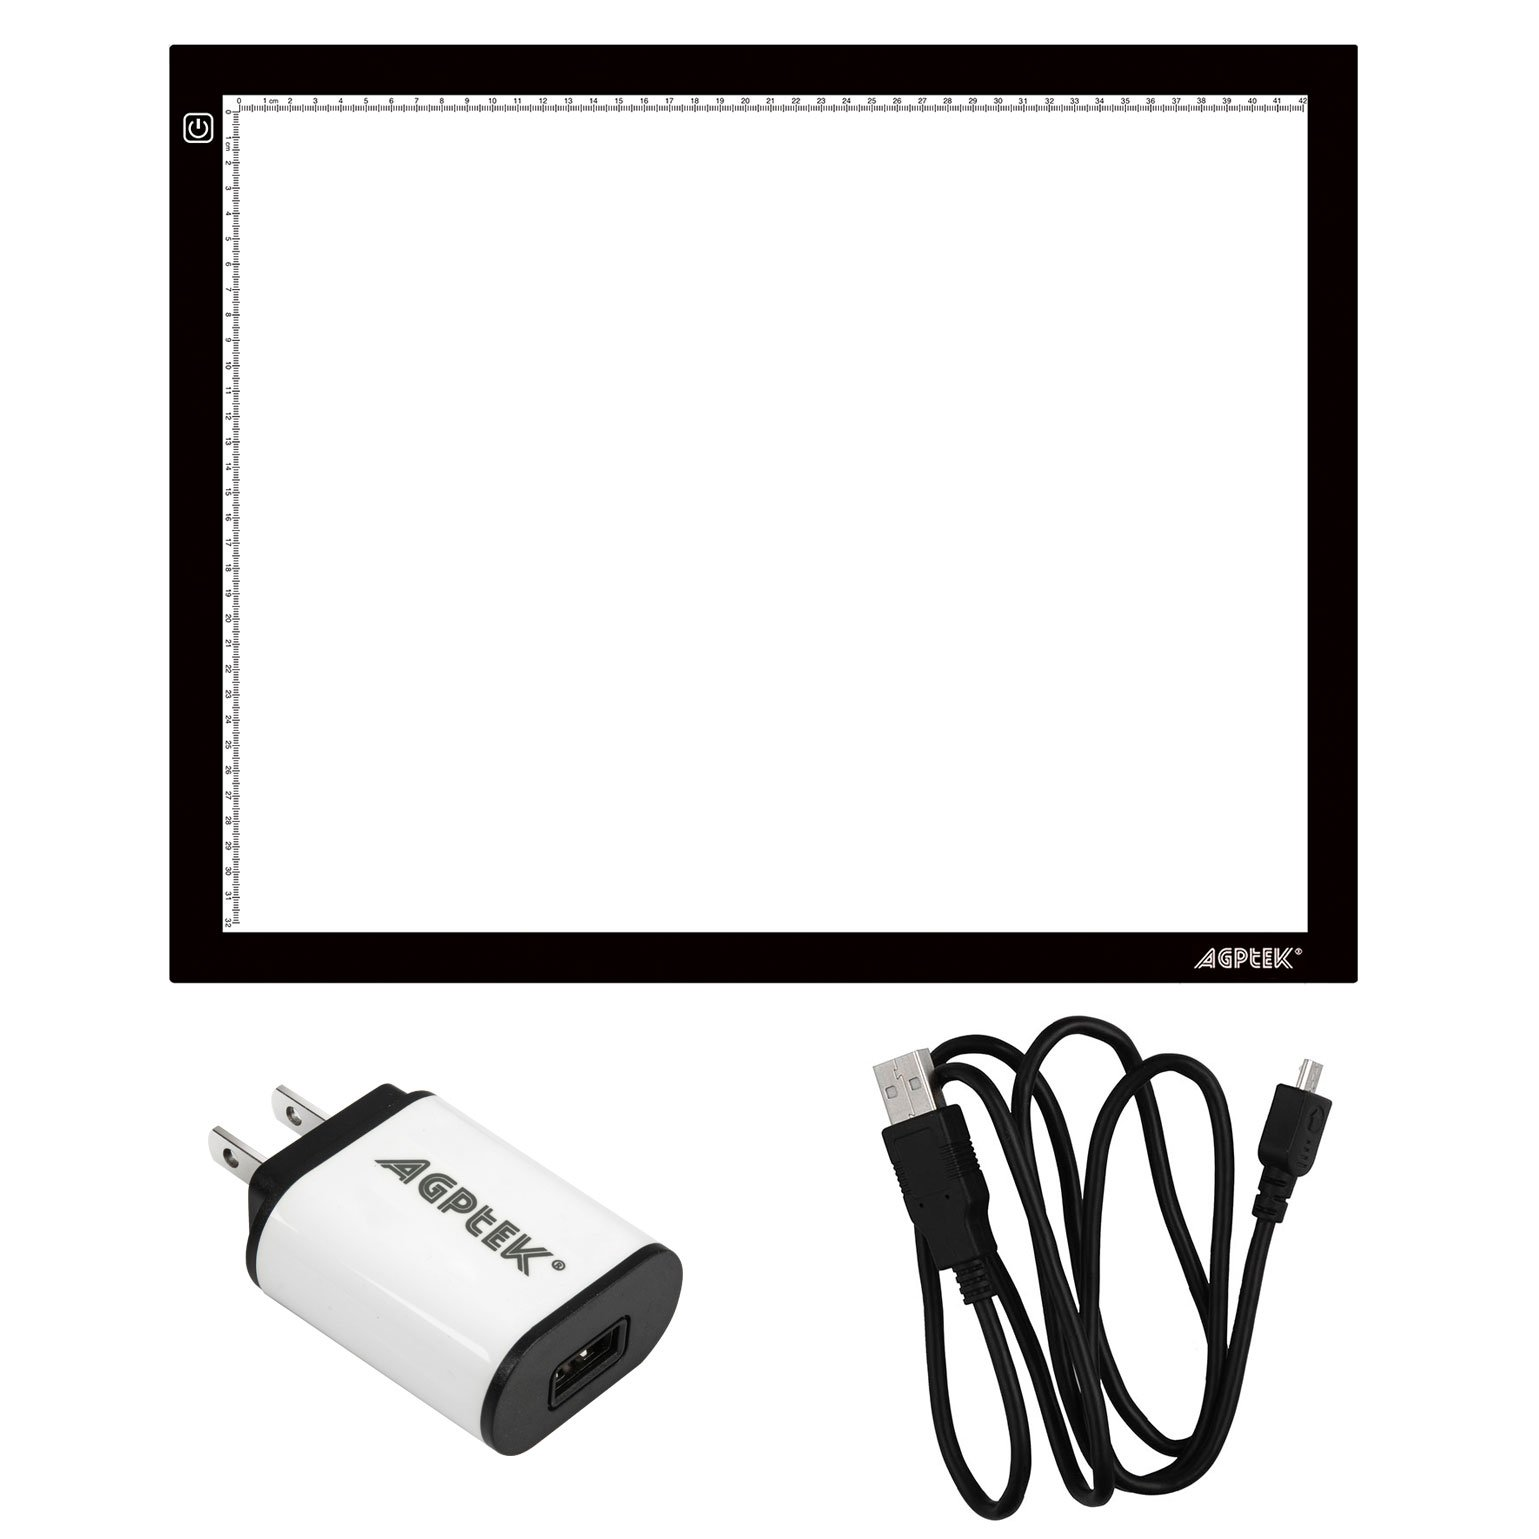 AGPtEK A3 light box, Light Pad Artcraft Tracing Light Board Ultra-thin USB Powered Dimmable LED Brightness for Diamond Painting Tatoo Pad Animation Sketching Designing Stencilling X-ray Viewing by AGPTEK